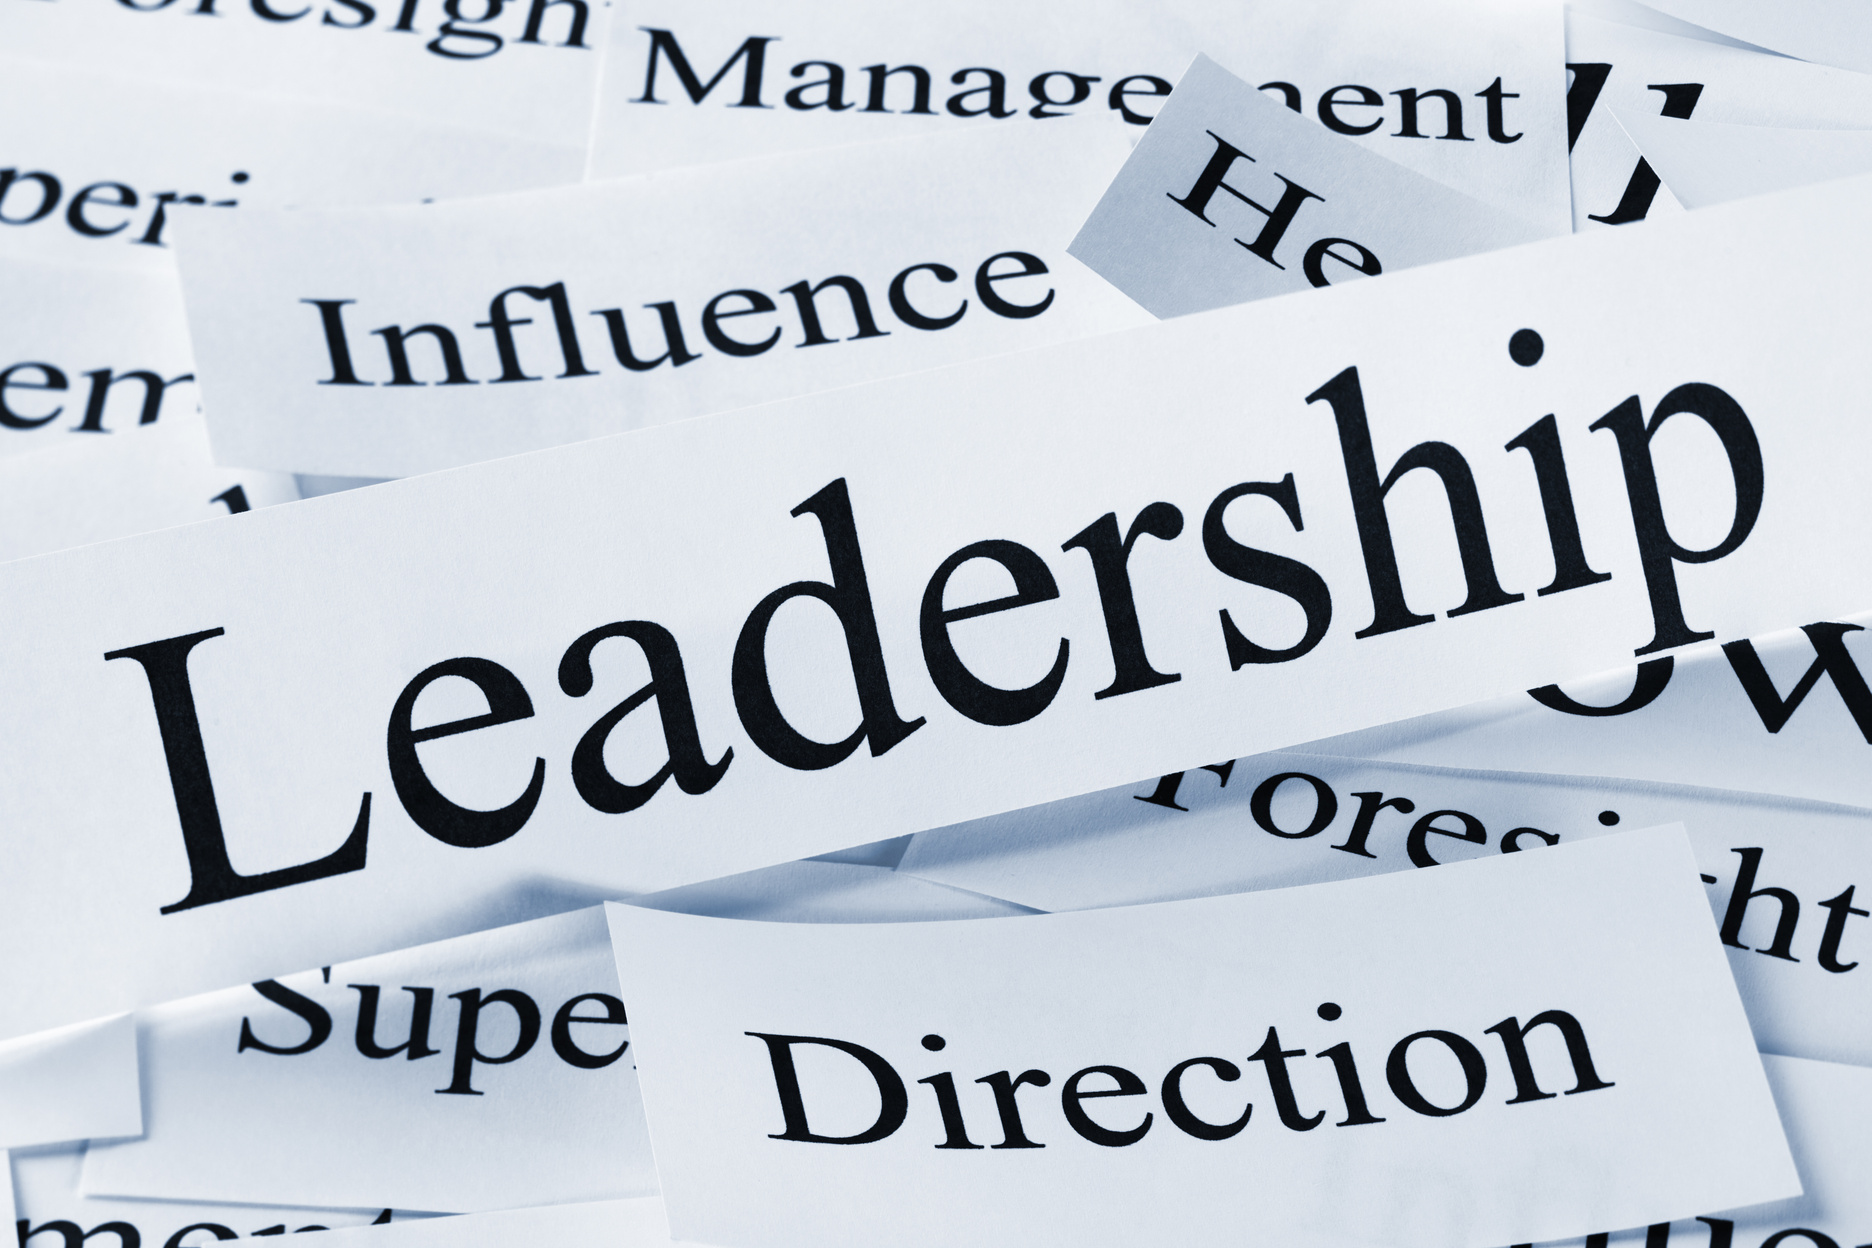 the role of a leader The president and political leader because the presidency is the foremost prize of american politics, the president is also normally the nation's principal political leader and regarded as the leader of his political party.